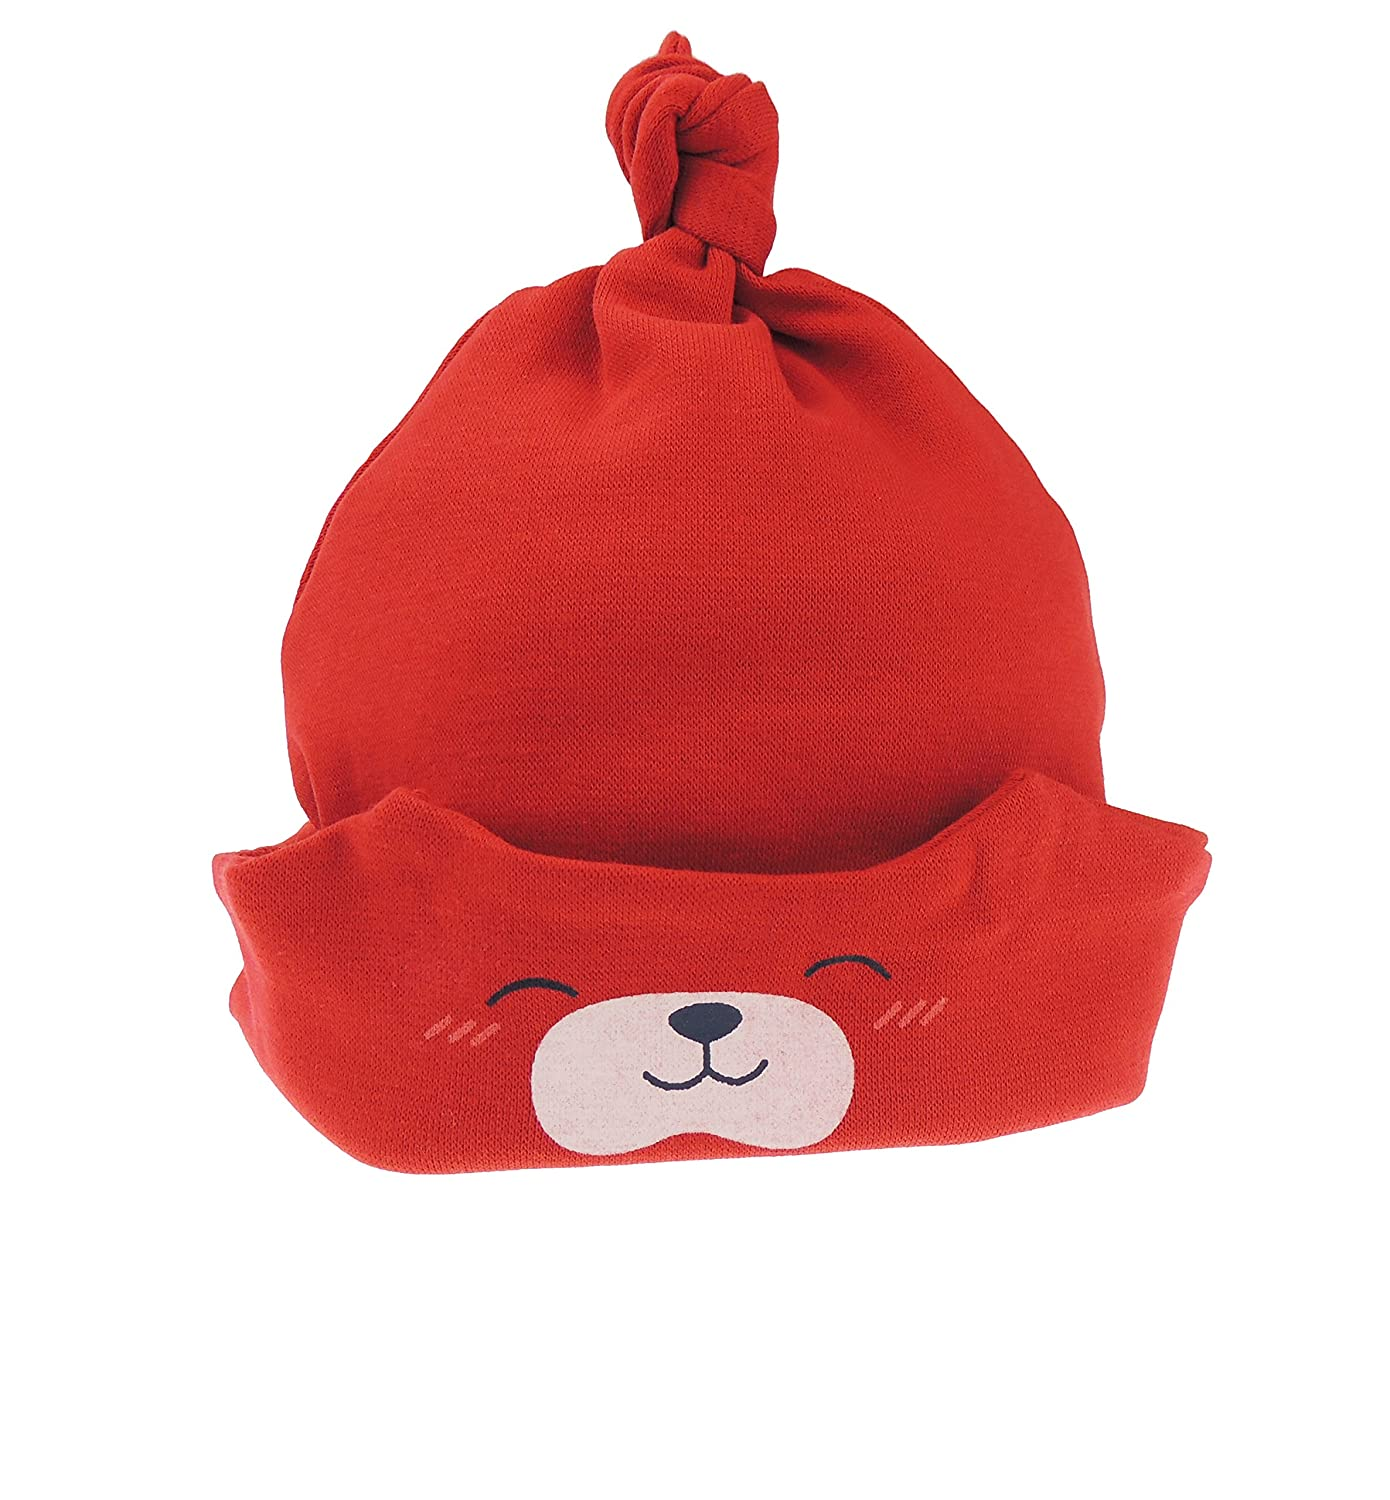 Baby Girls Boys Teddy Bear Sleep Beanie Hat Fold Up Fold Down from New-Born to 24 Months (Red)